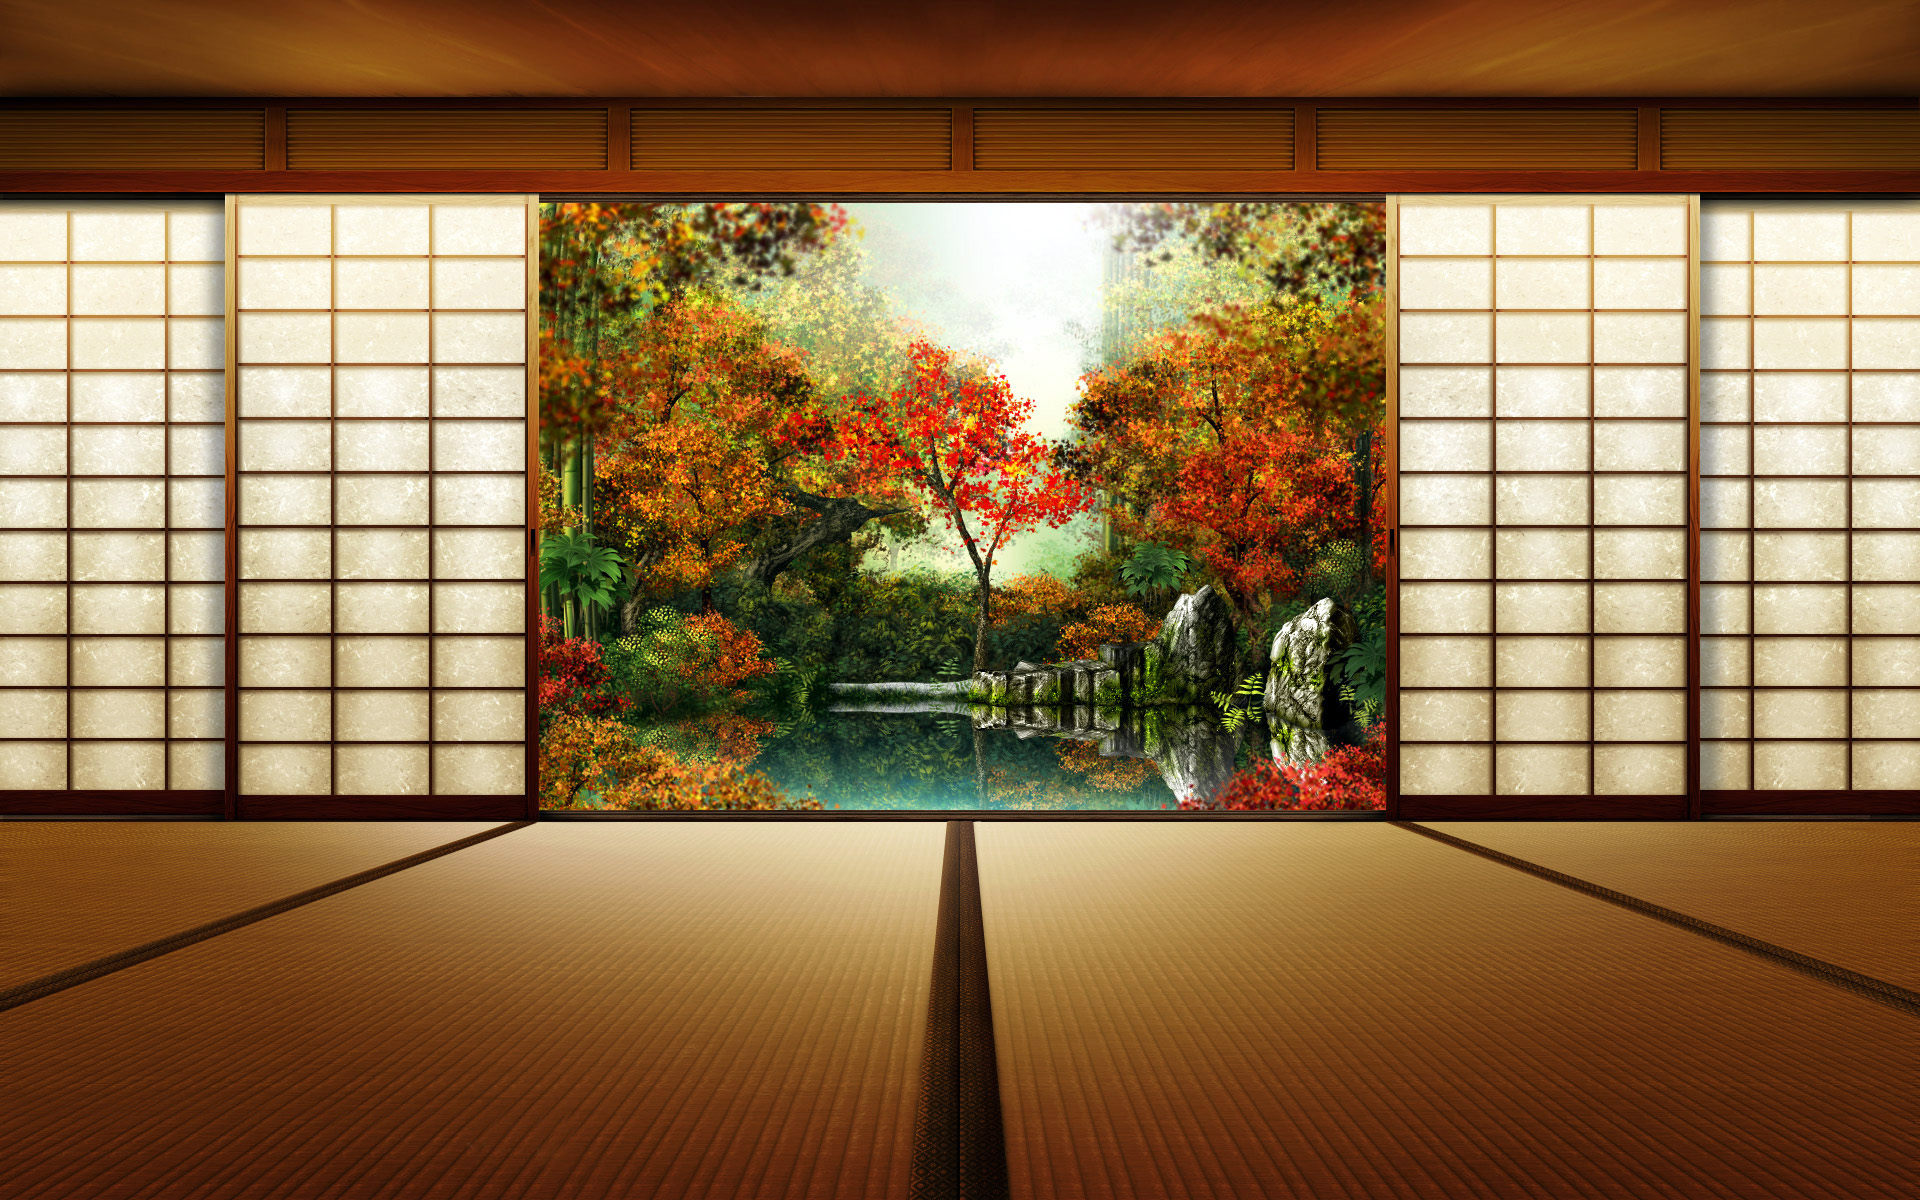 1080p hd japan wallpapers for free download the for Best home wallpaper